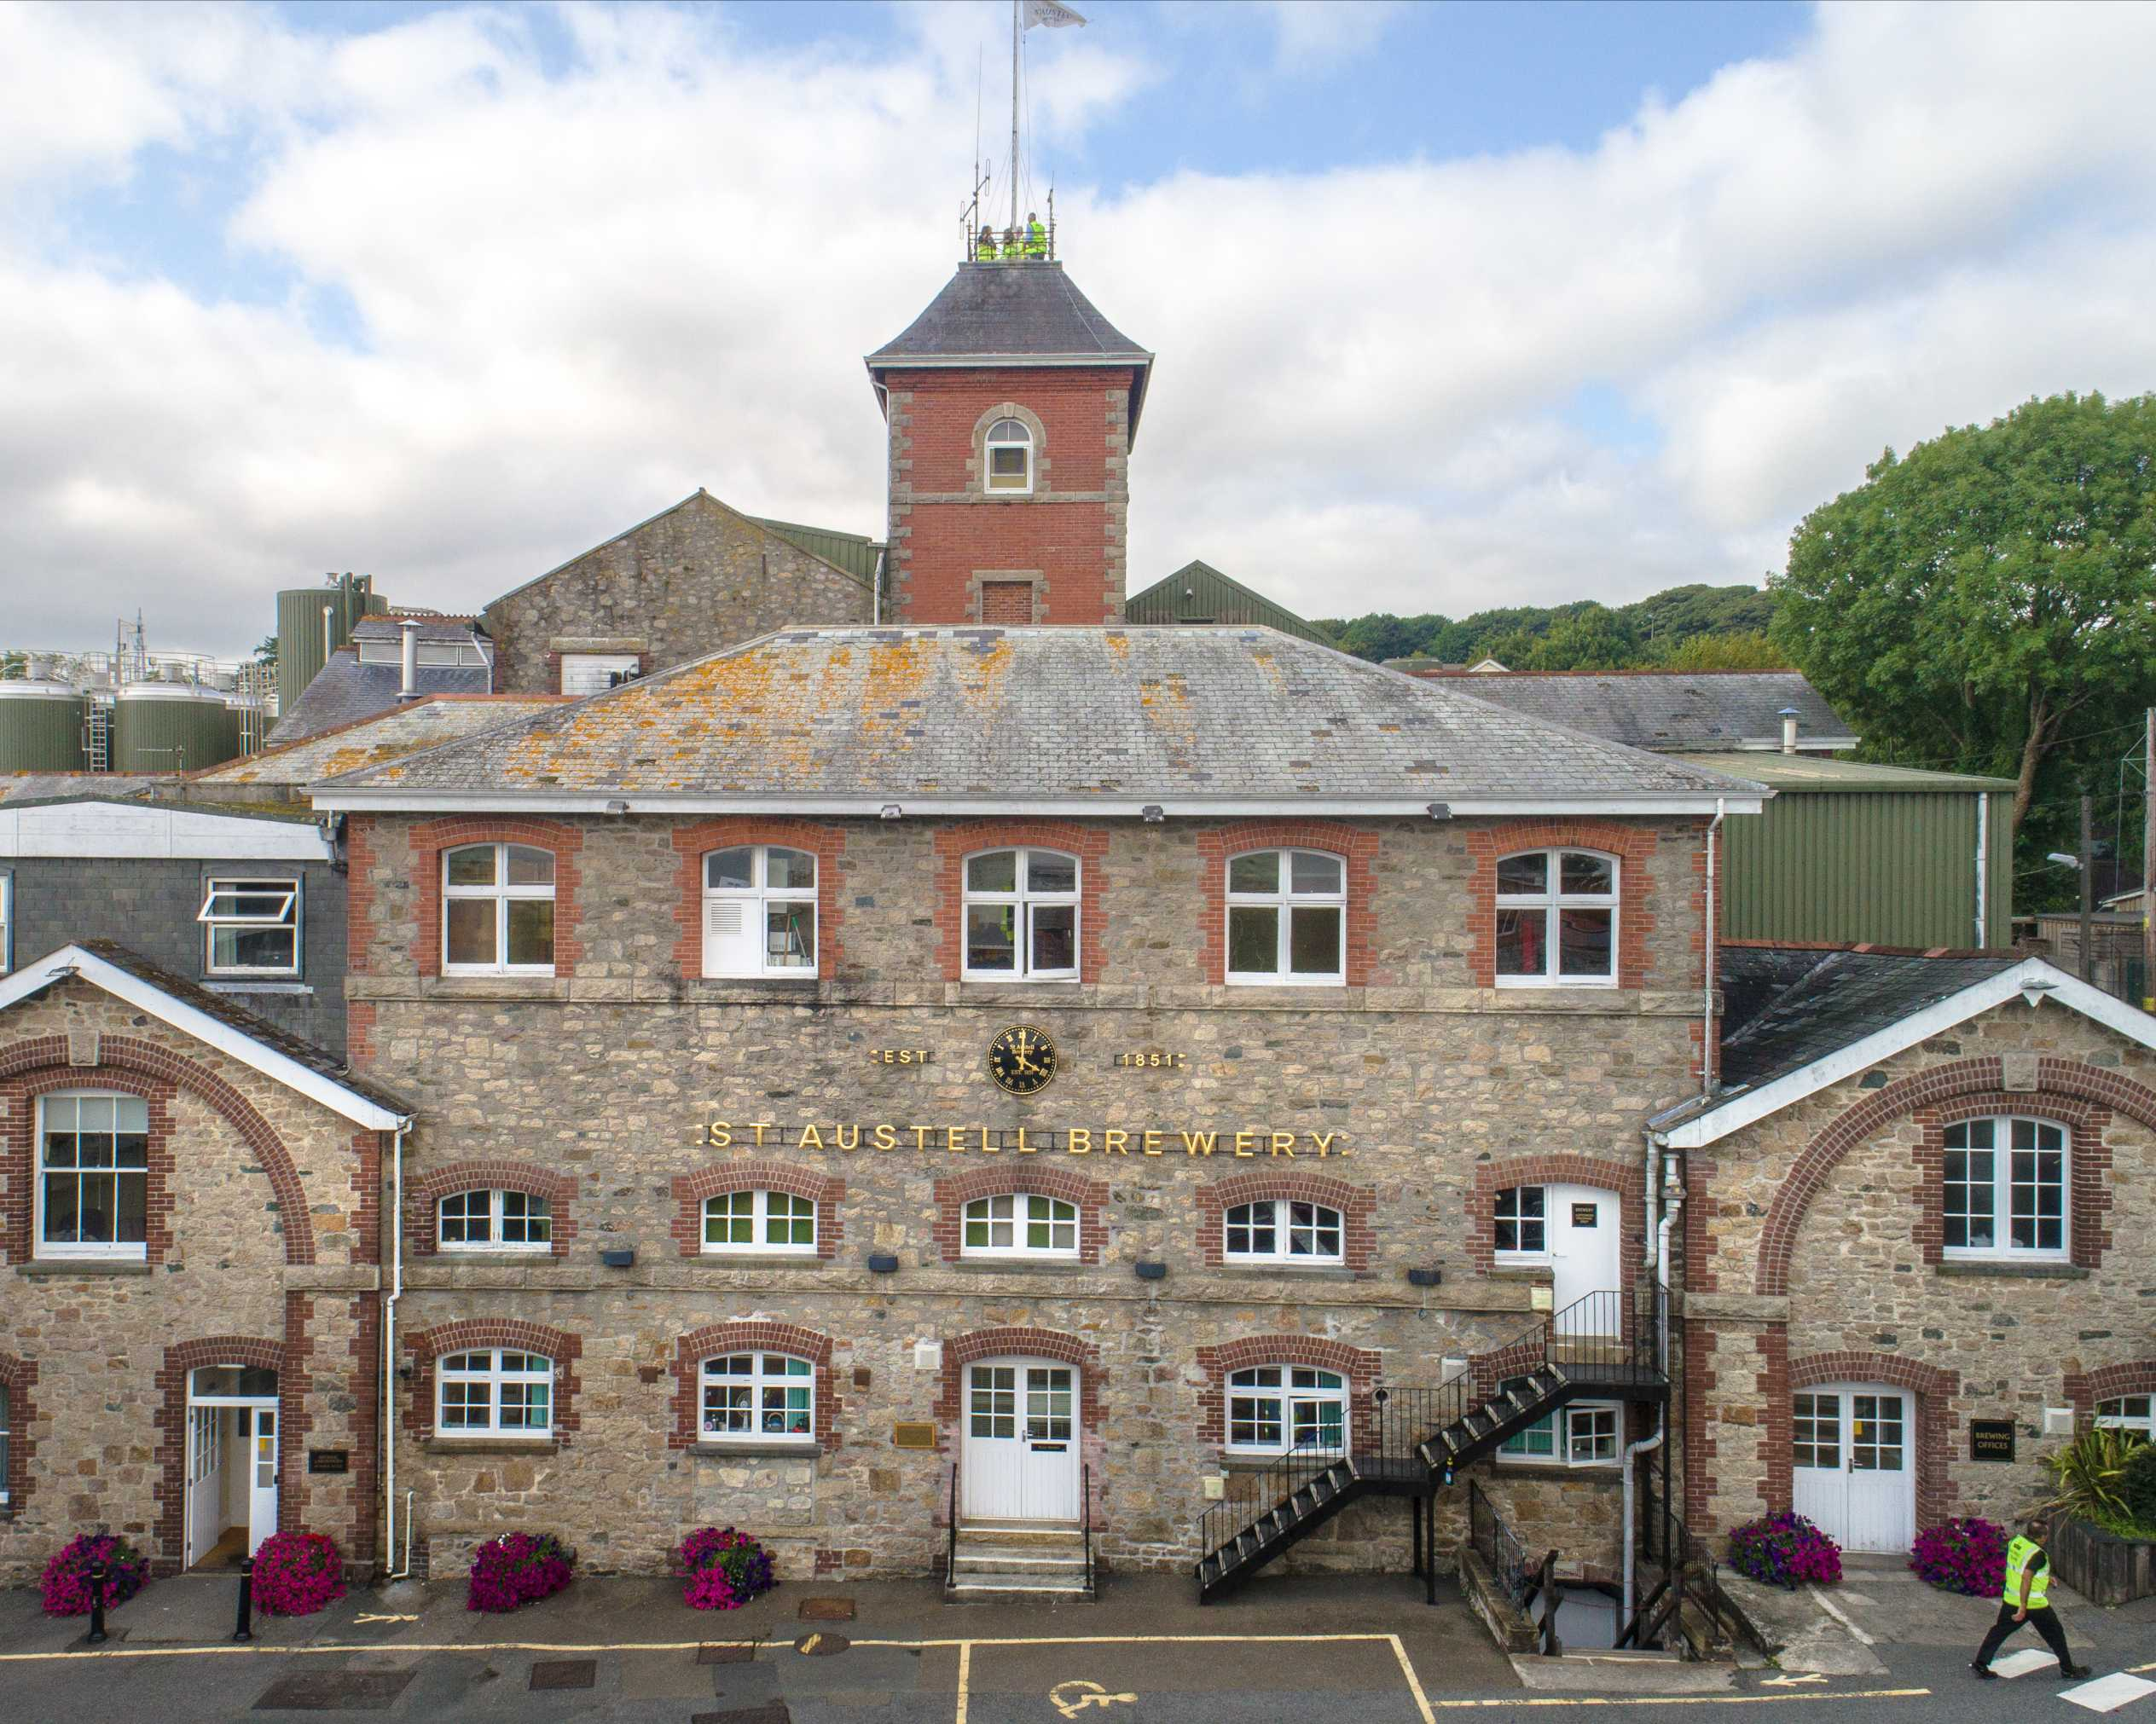 Picture of the St. Austell brewery